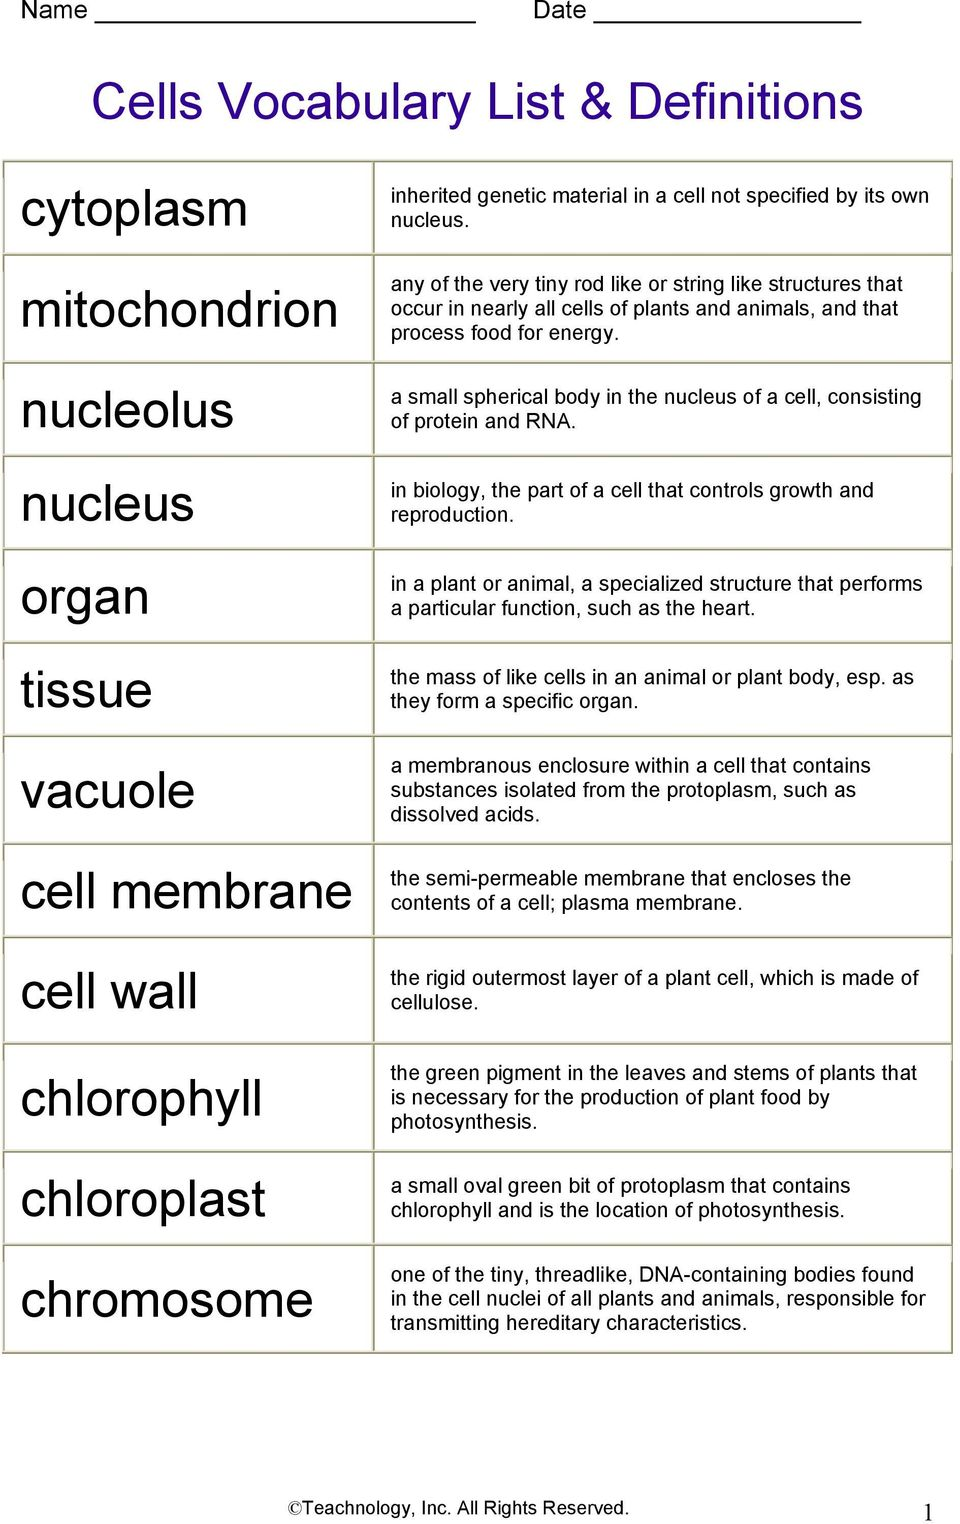 cells vocabulary list definitions pdf. Black Bedroom Furniture Sets. Home Design Ideas